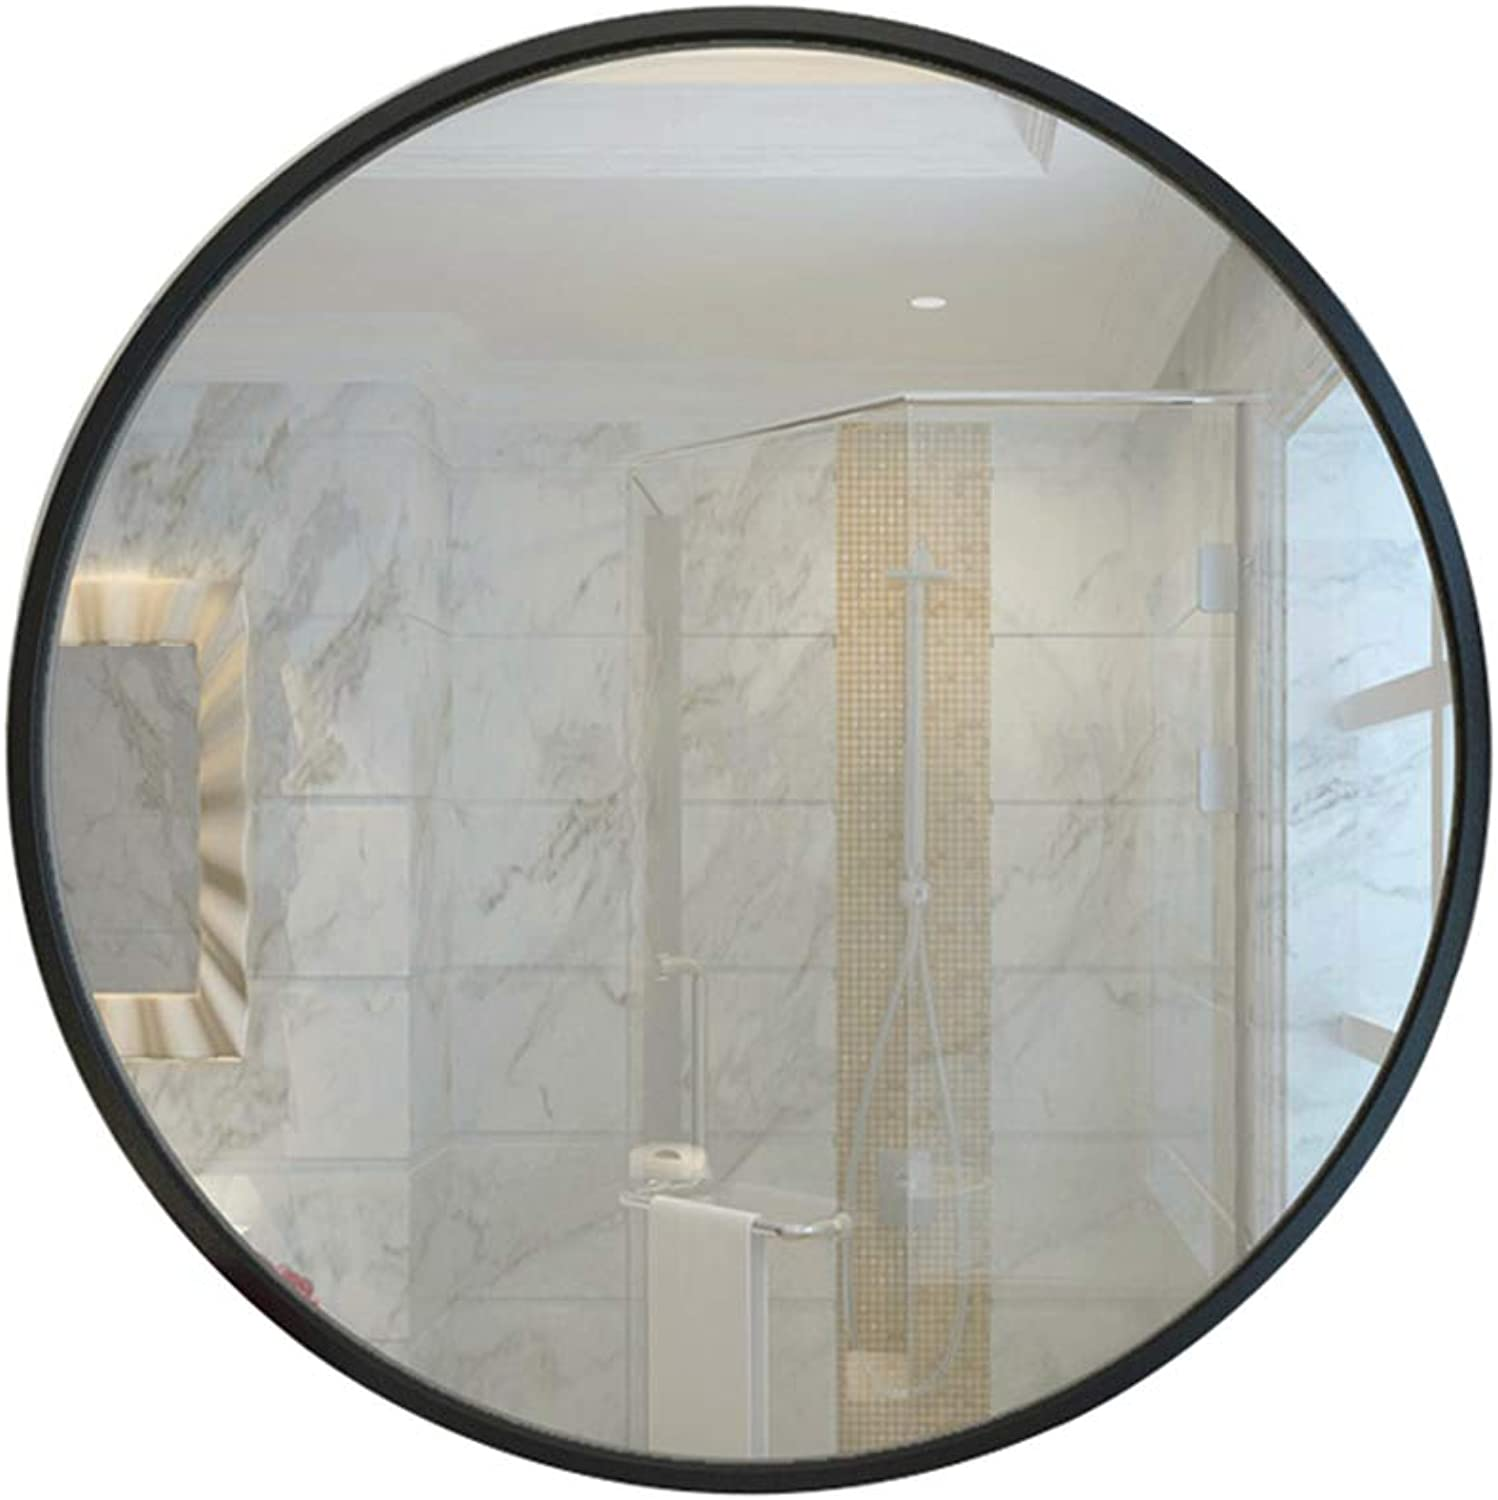 Wall-Mounted Mirror Round Diameter 40 50 60 70cm Black Metal Frame for Bedroom Bathroom Living Room Decorative Concise Fashion